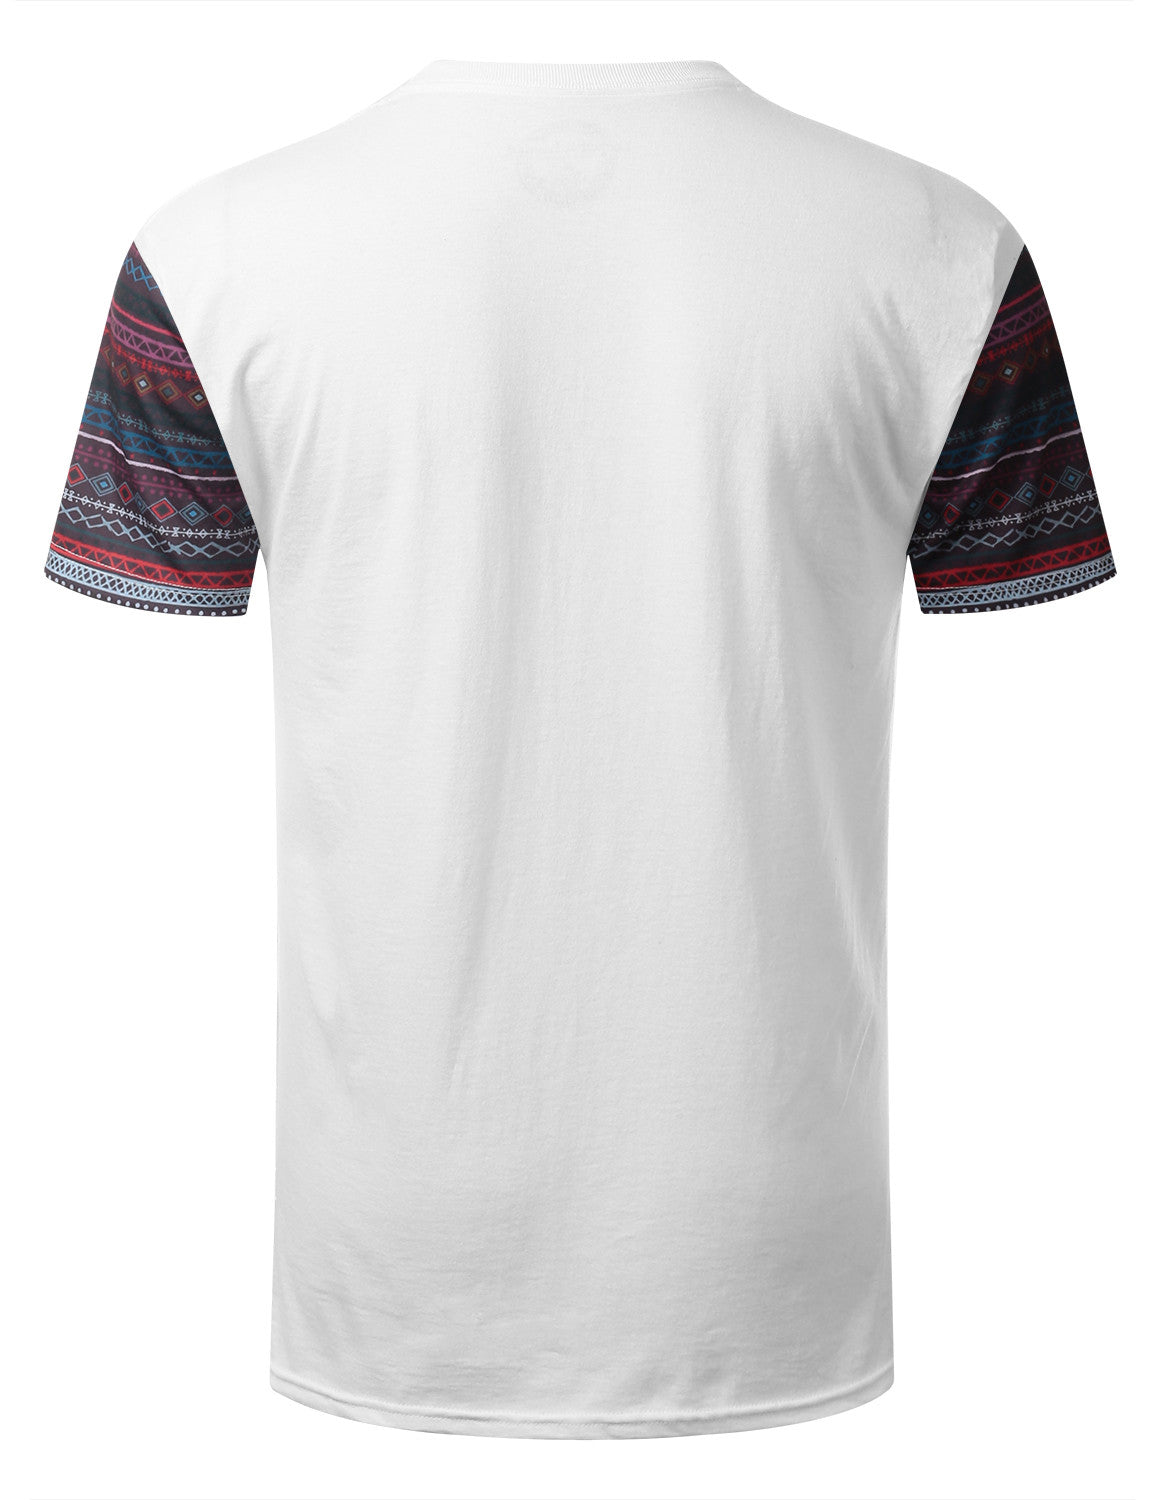 WHITE Mayan Tribal Pattern Pocket Tshirt - URBANCREWS